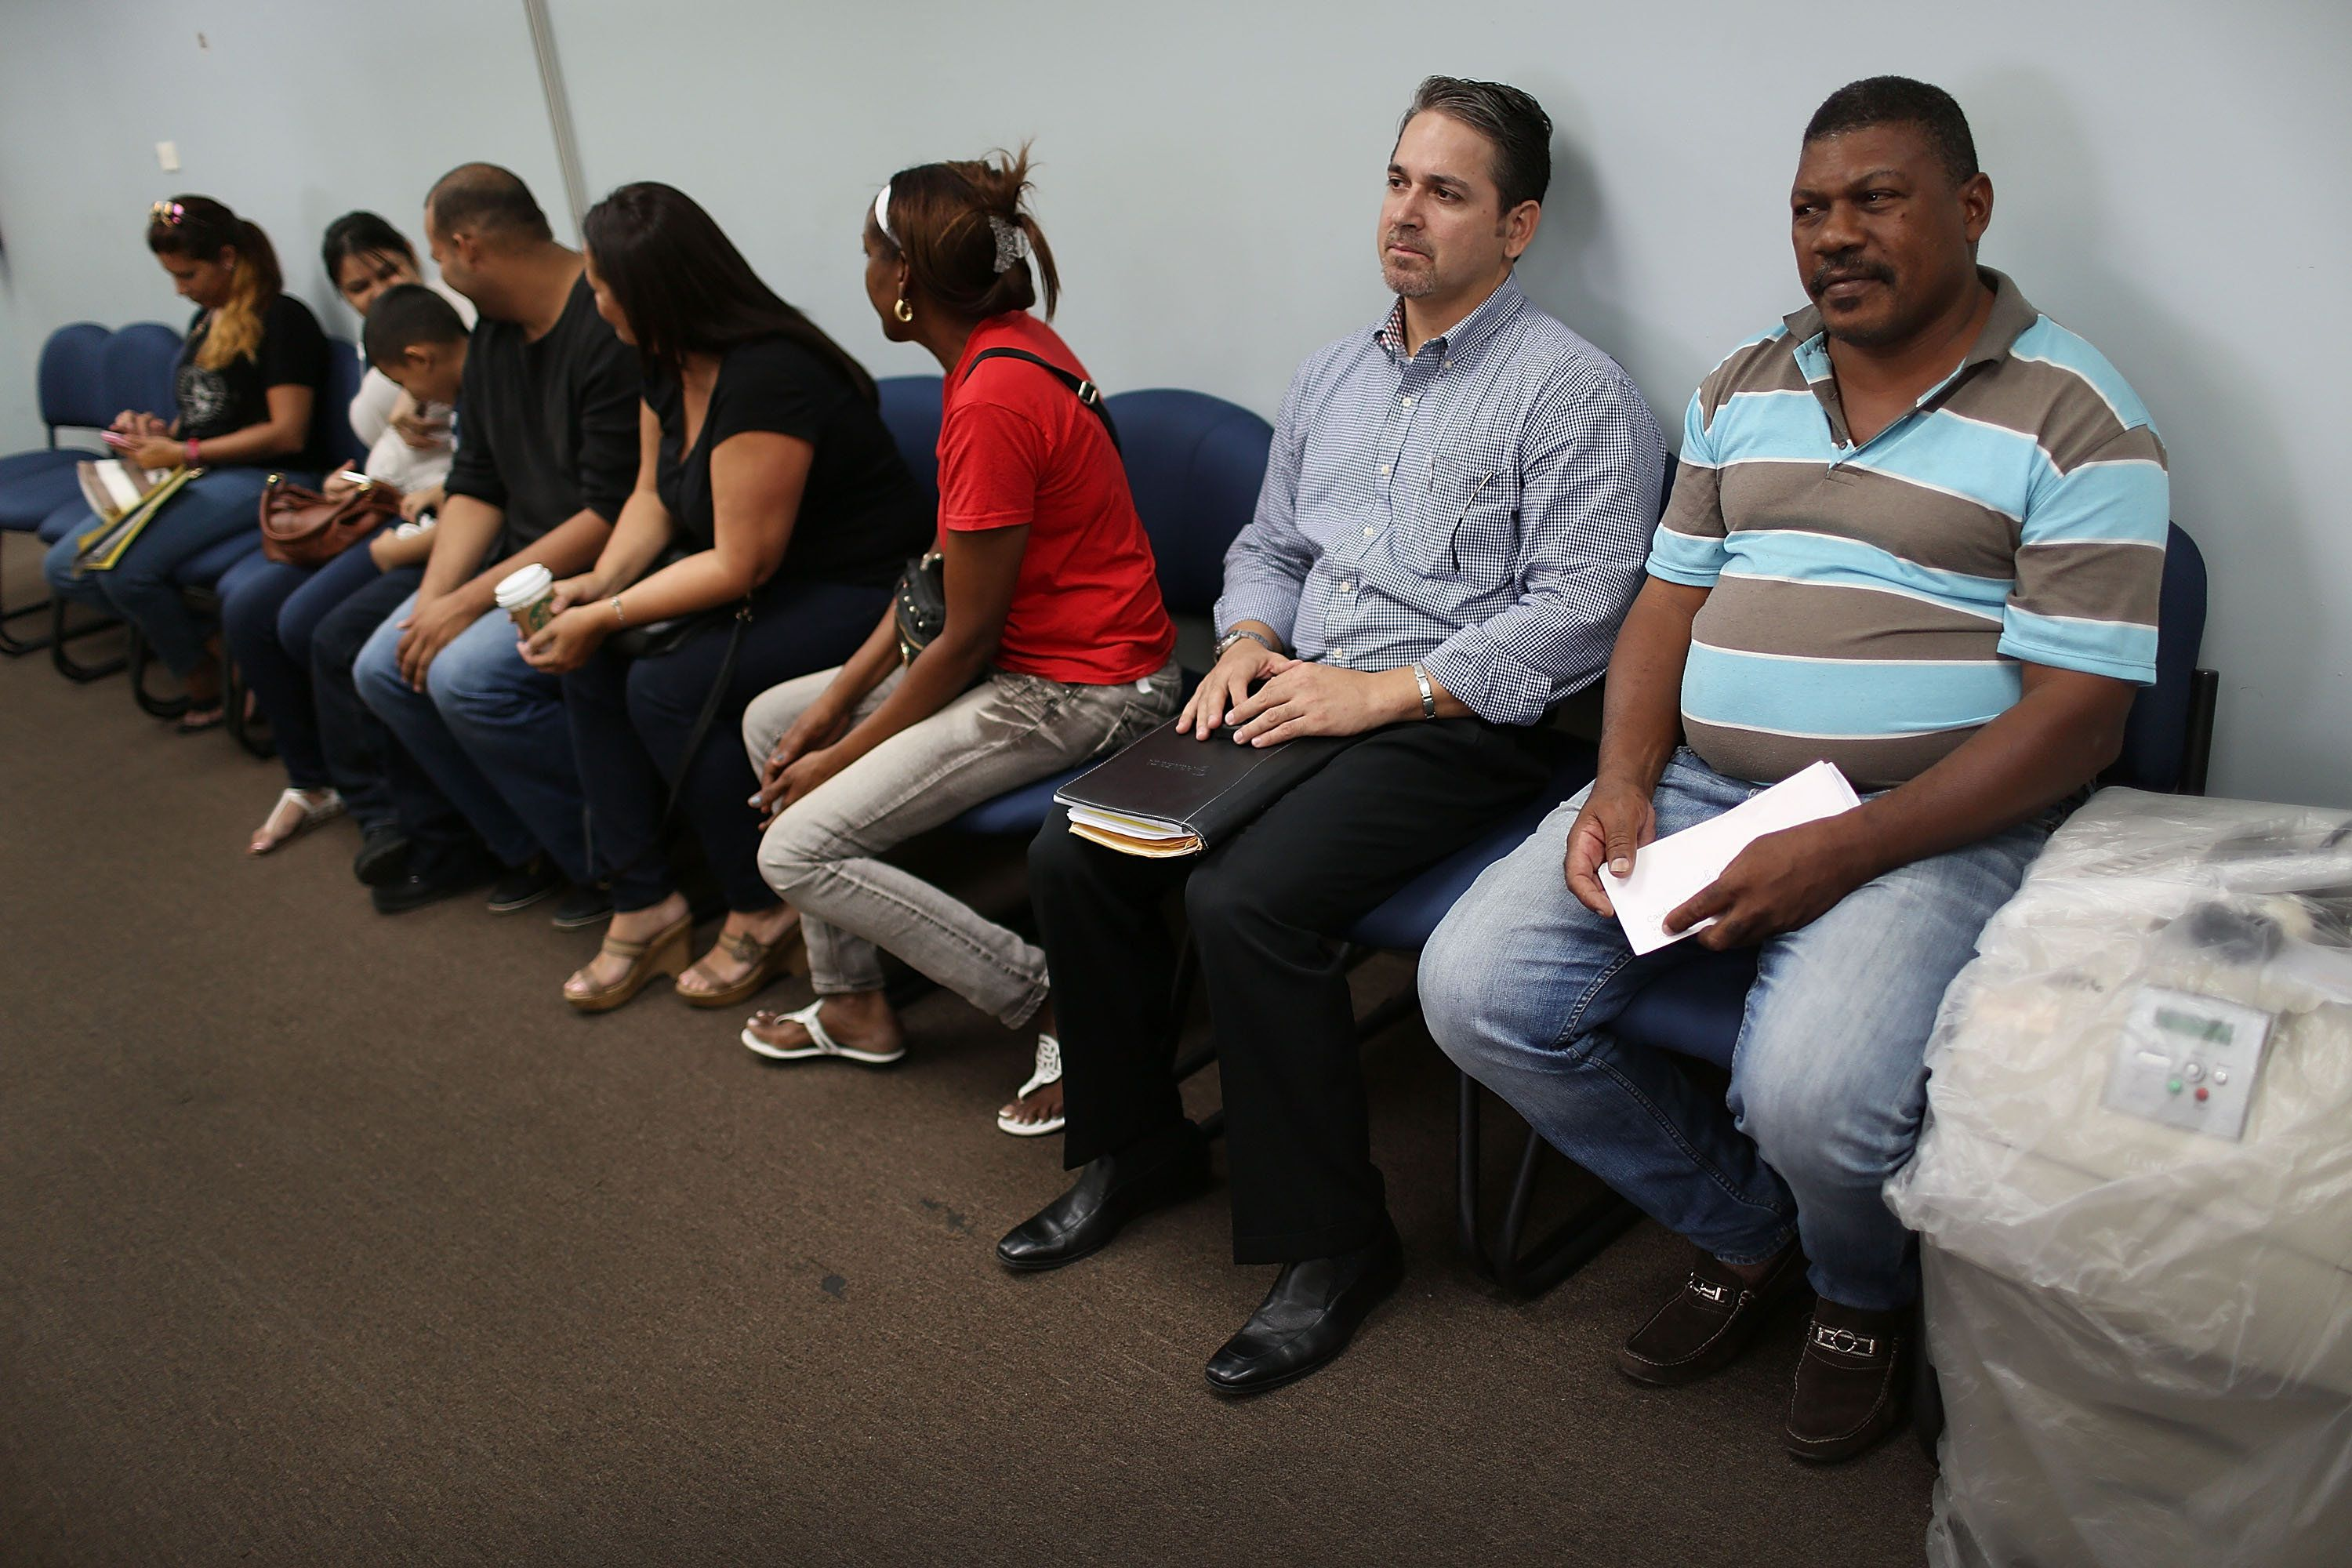 Unemployed Puerto Ricans wait in line for assistance last year. The island has an unemployment rate of over 12 percent.